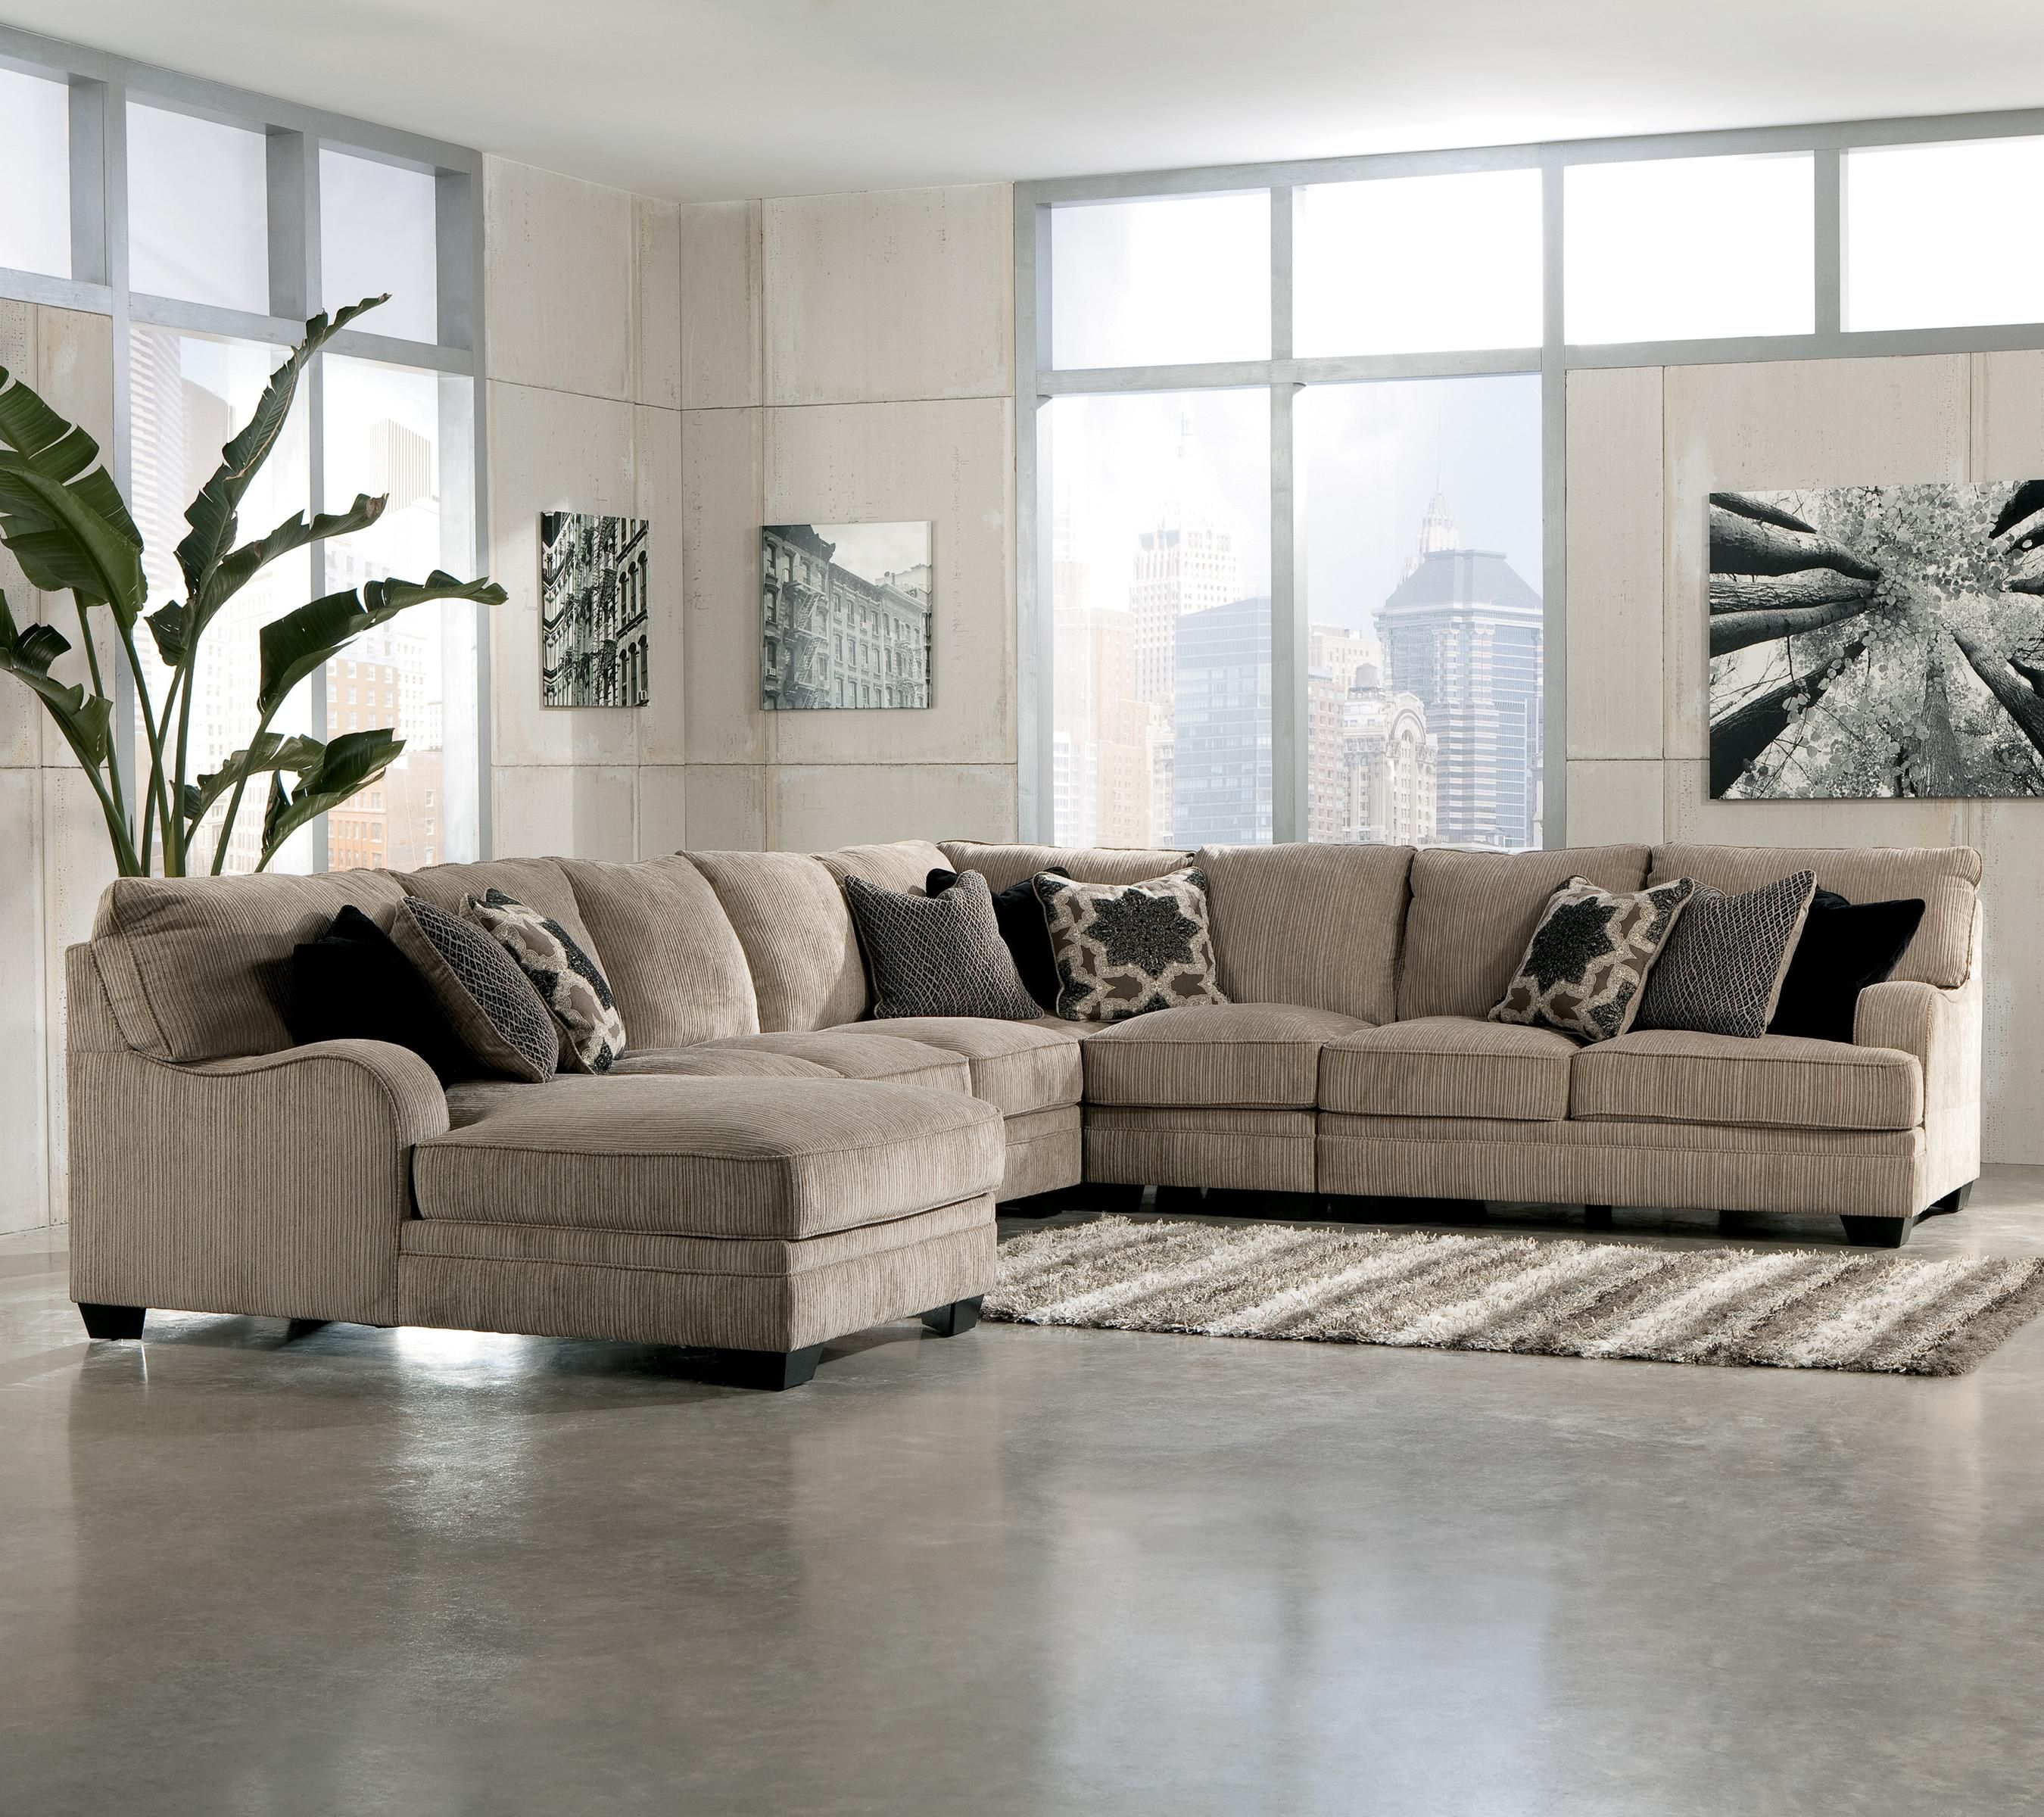 Katisha Platinum 5 Piece Sectional Sofa with Left Chaise by